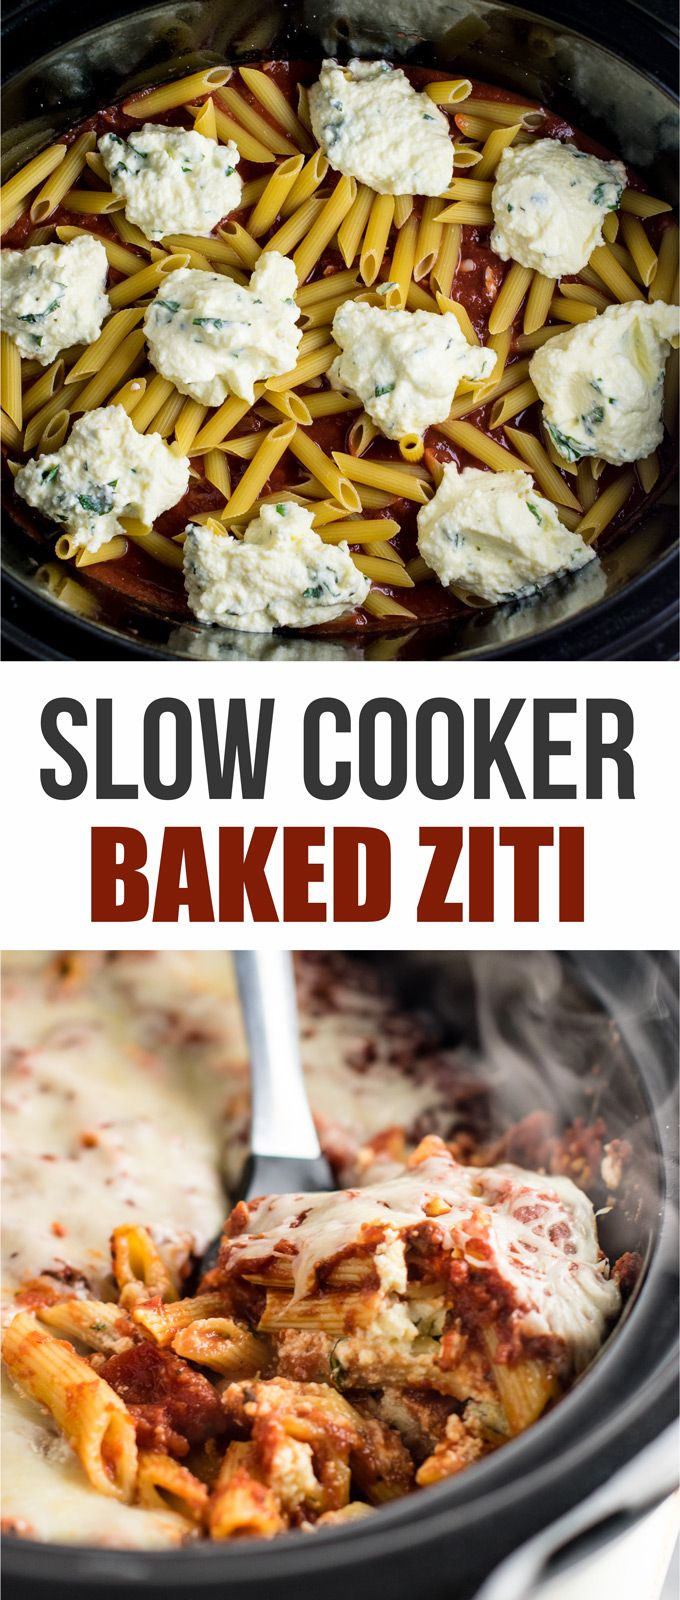 Crock Pot Baked Ziti #crockpotrecipes